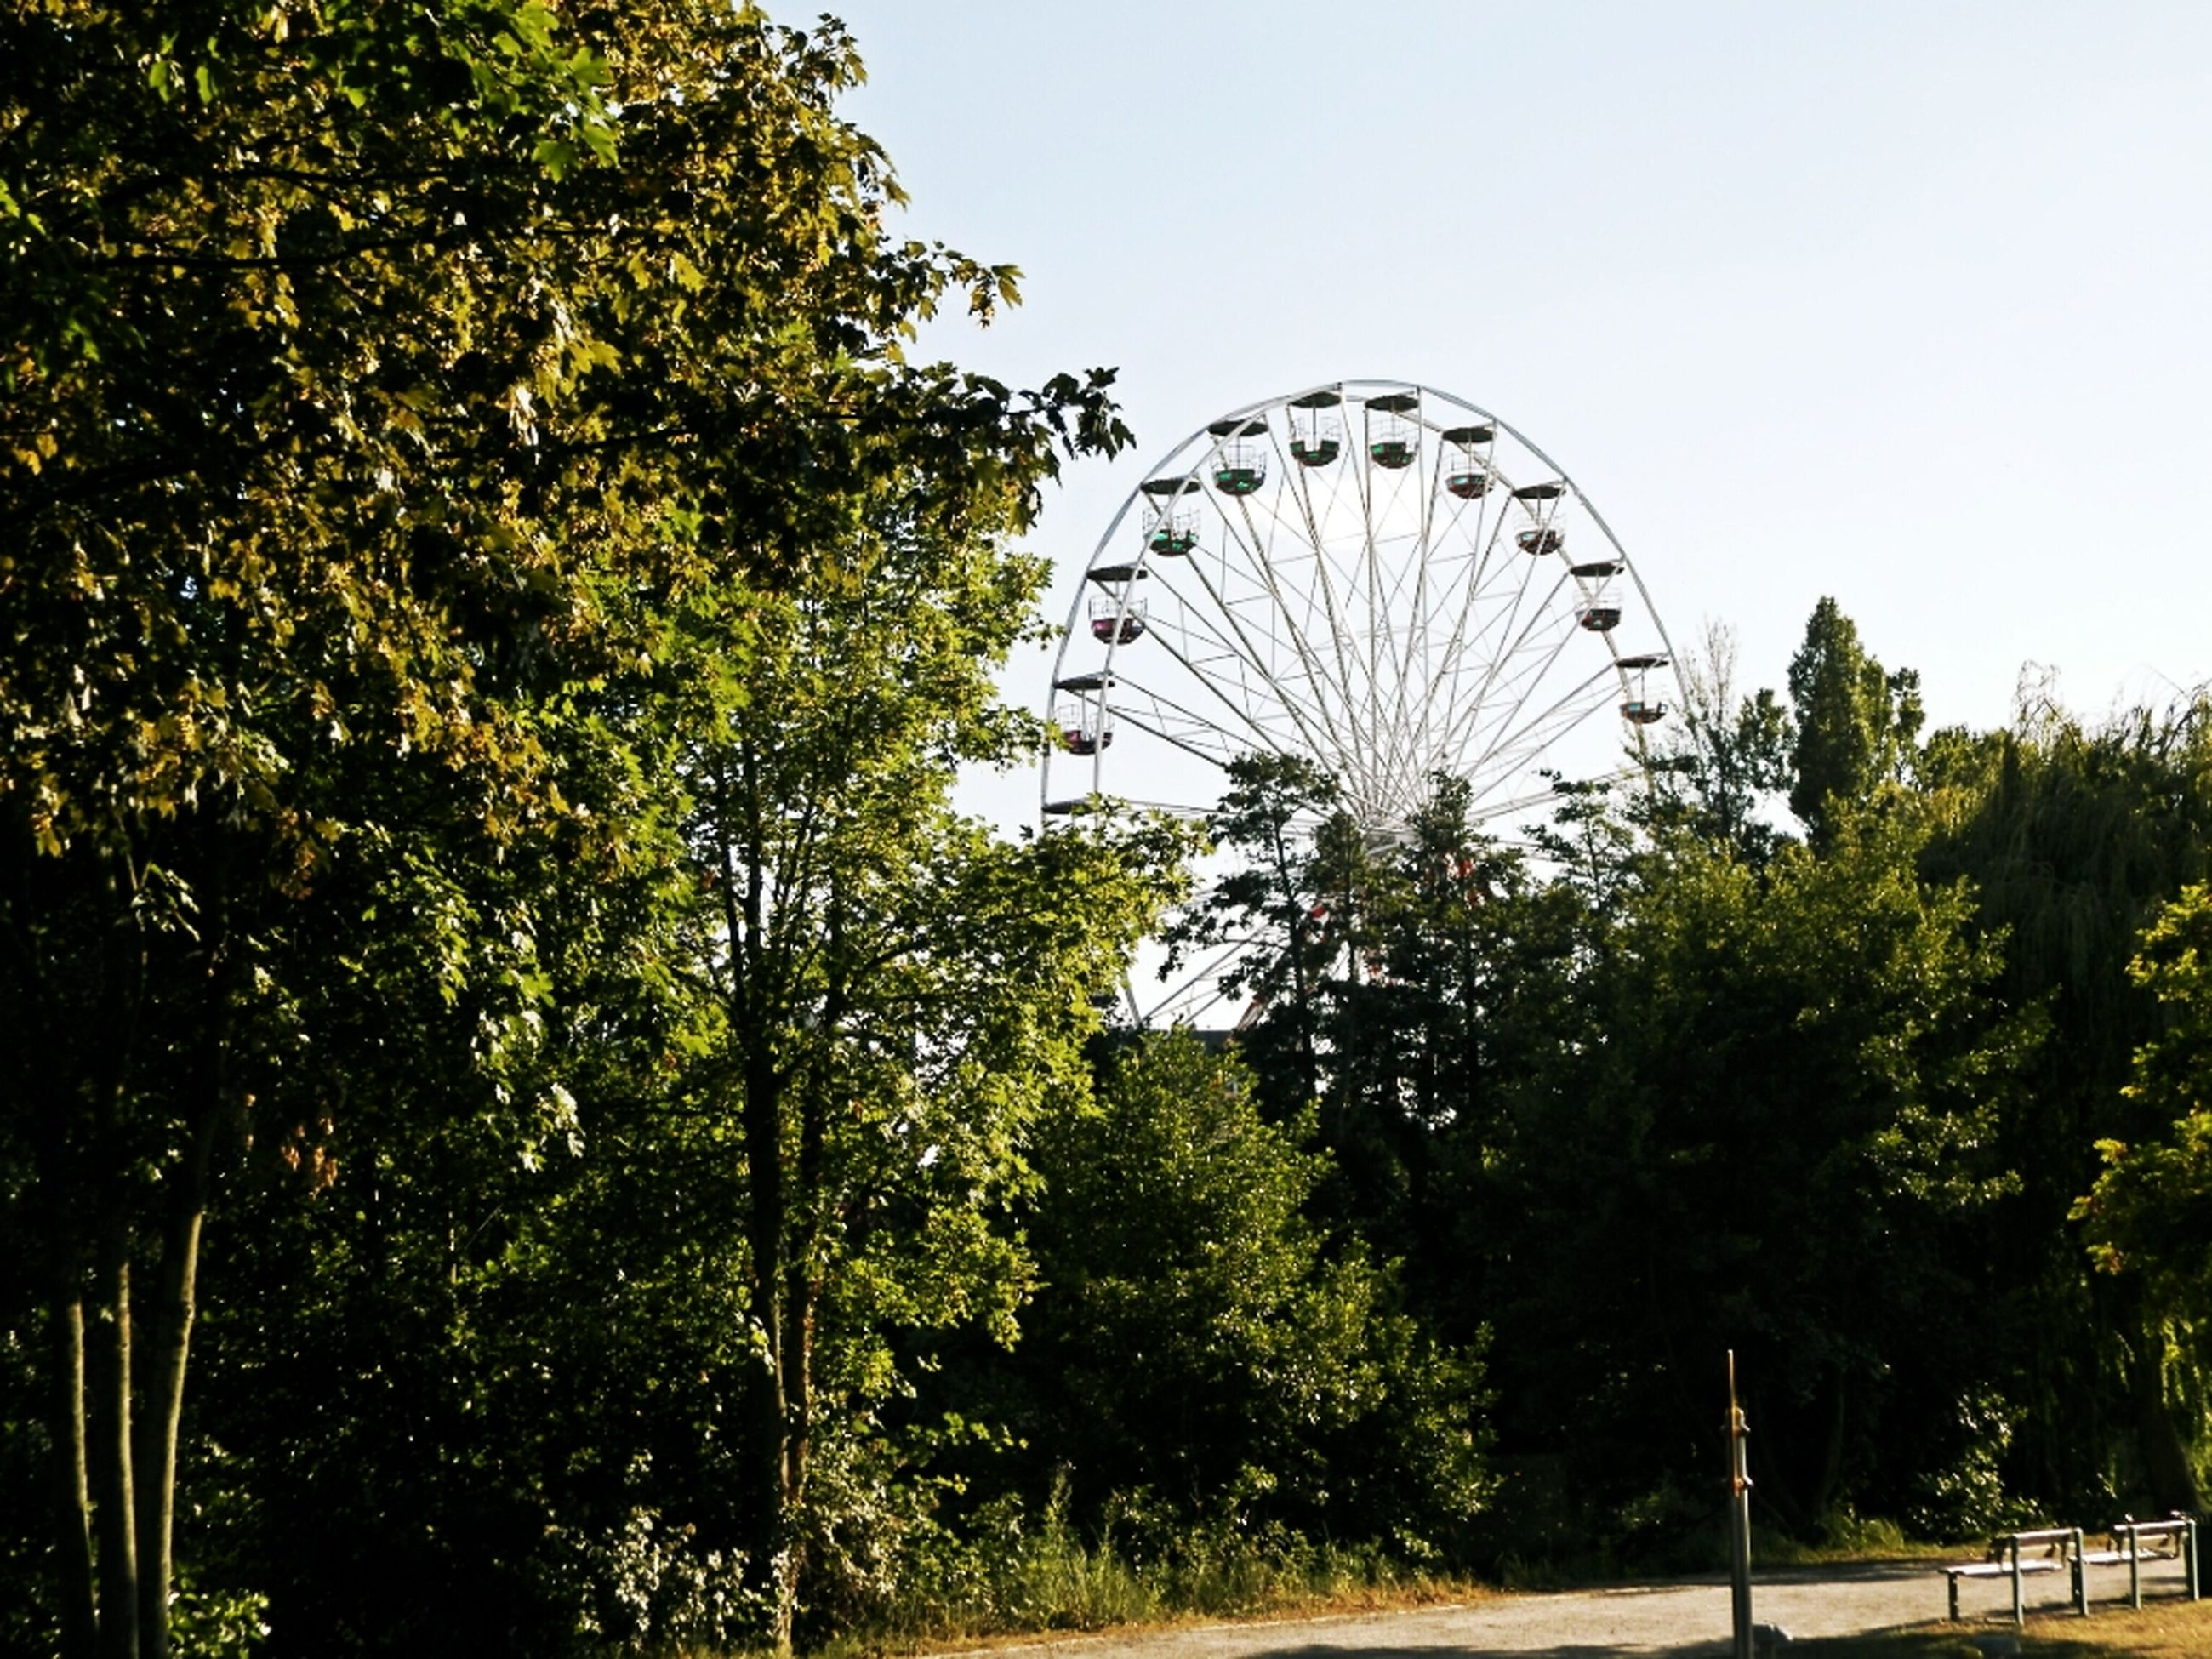 tree, ferris wheel, amusement park, amusement park ride, arts culture and entertainment, clear sky, low angle view, built structure, architecture, circle, sky, park - man made space, growth, large, outdoors, day, building exterior, no people, nature, incidental people